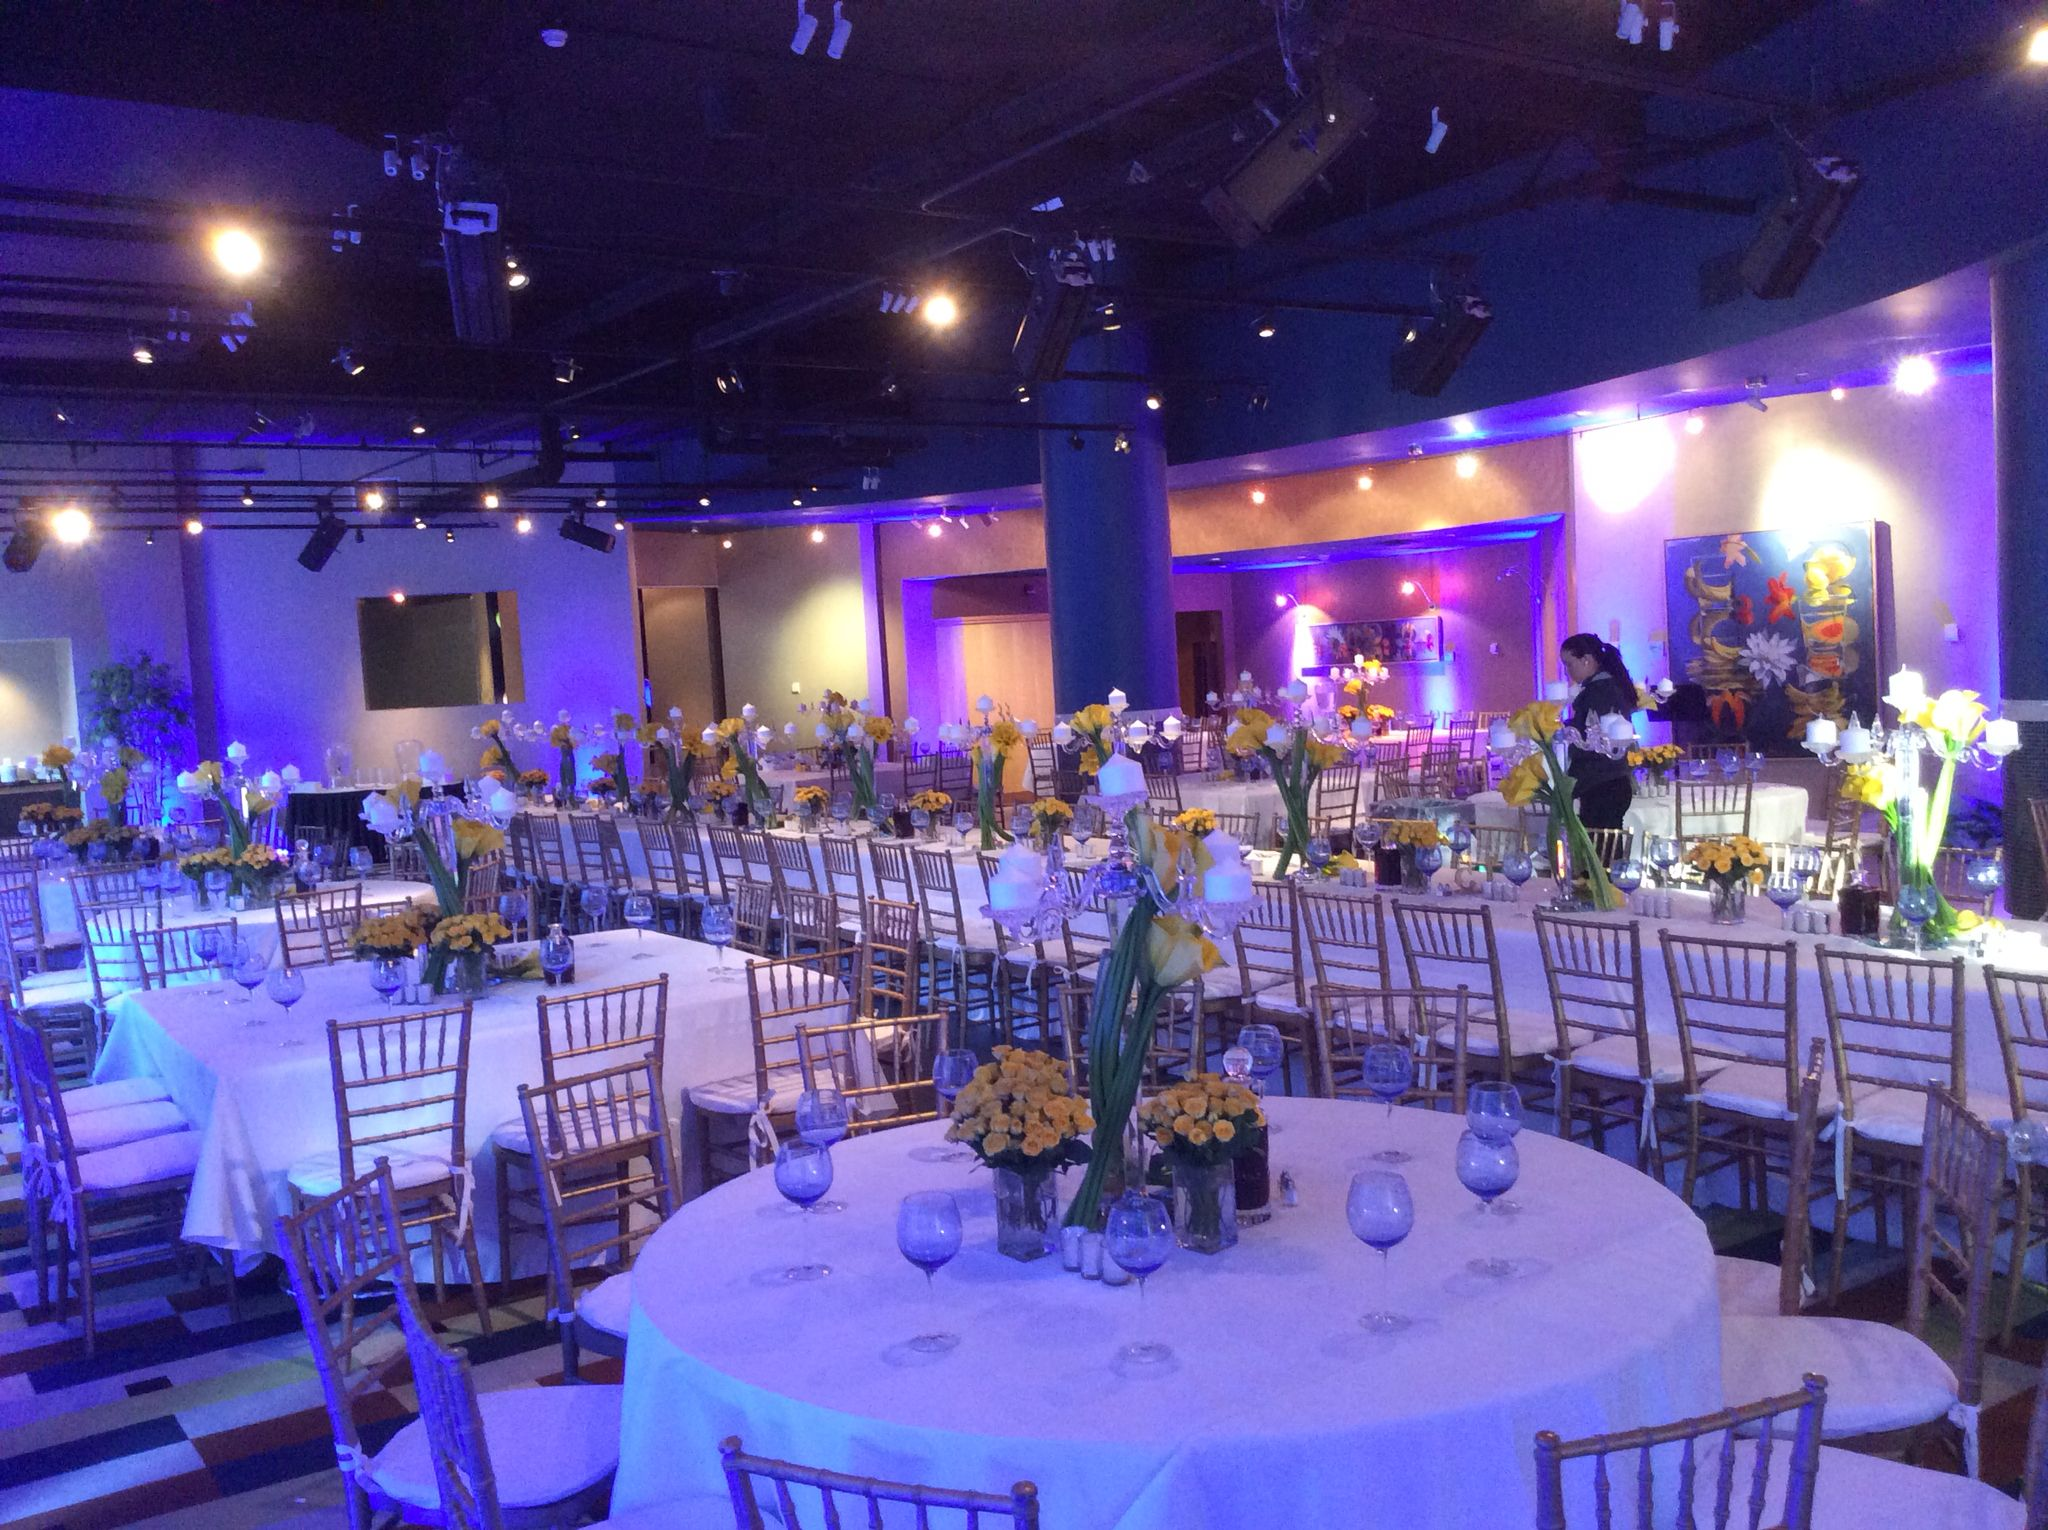 Christopher S Restaurant At Theheldrich Looking Beautiful For A Celebration Weddings The Heldrich Hotel